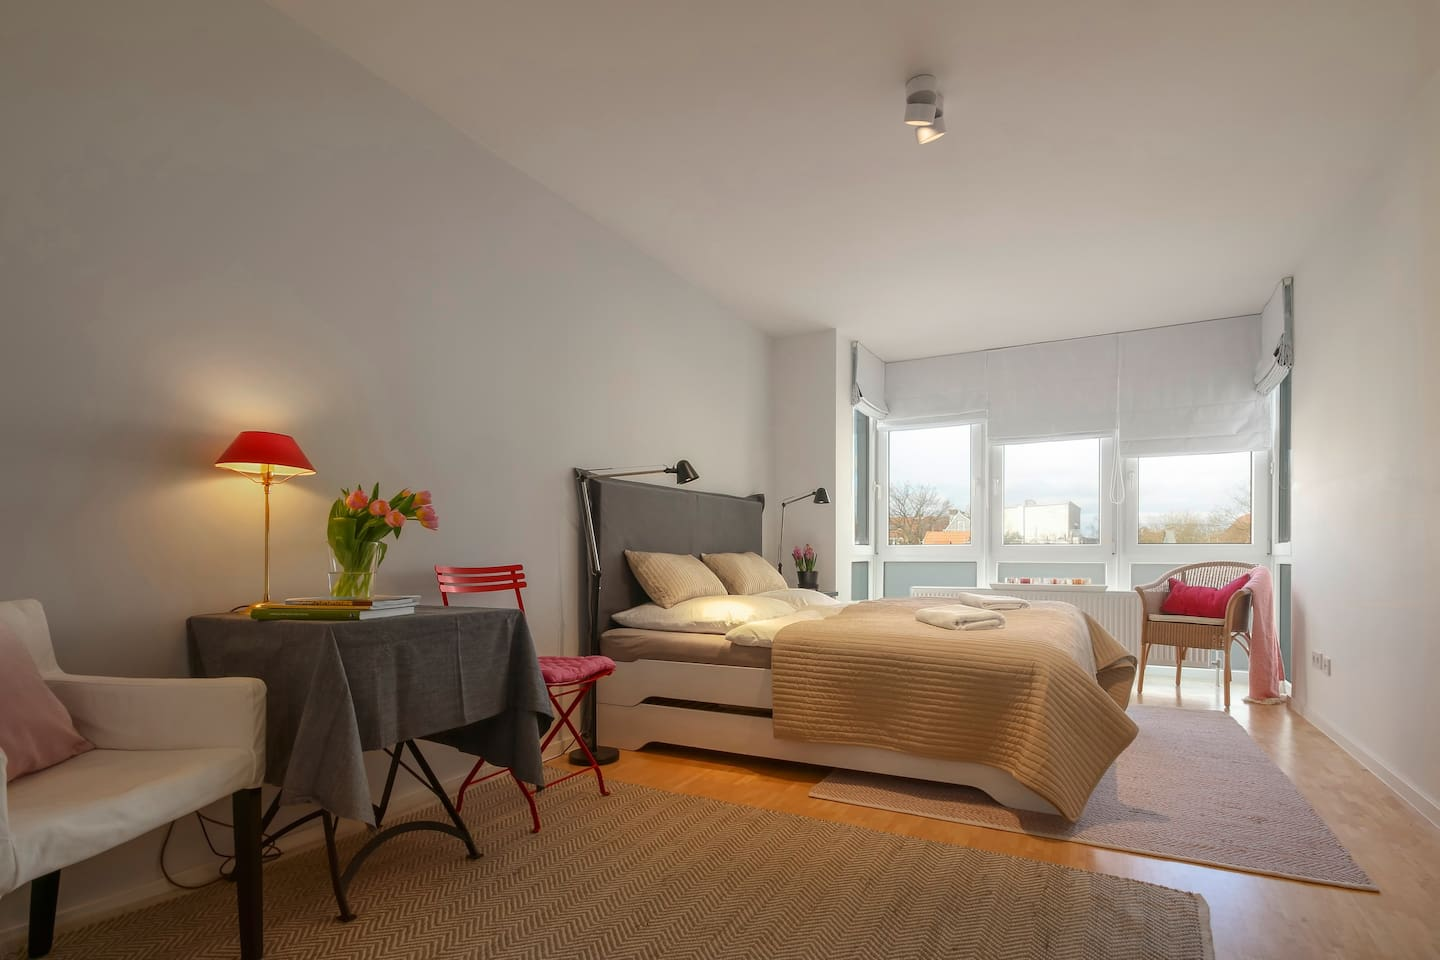 Guest room: 4 beds built as a double bed